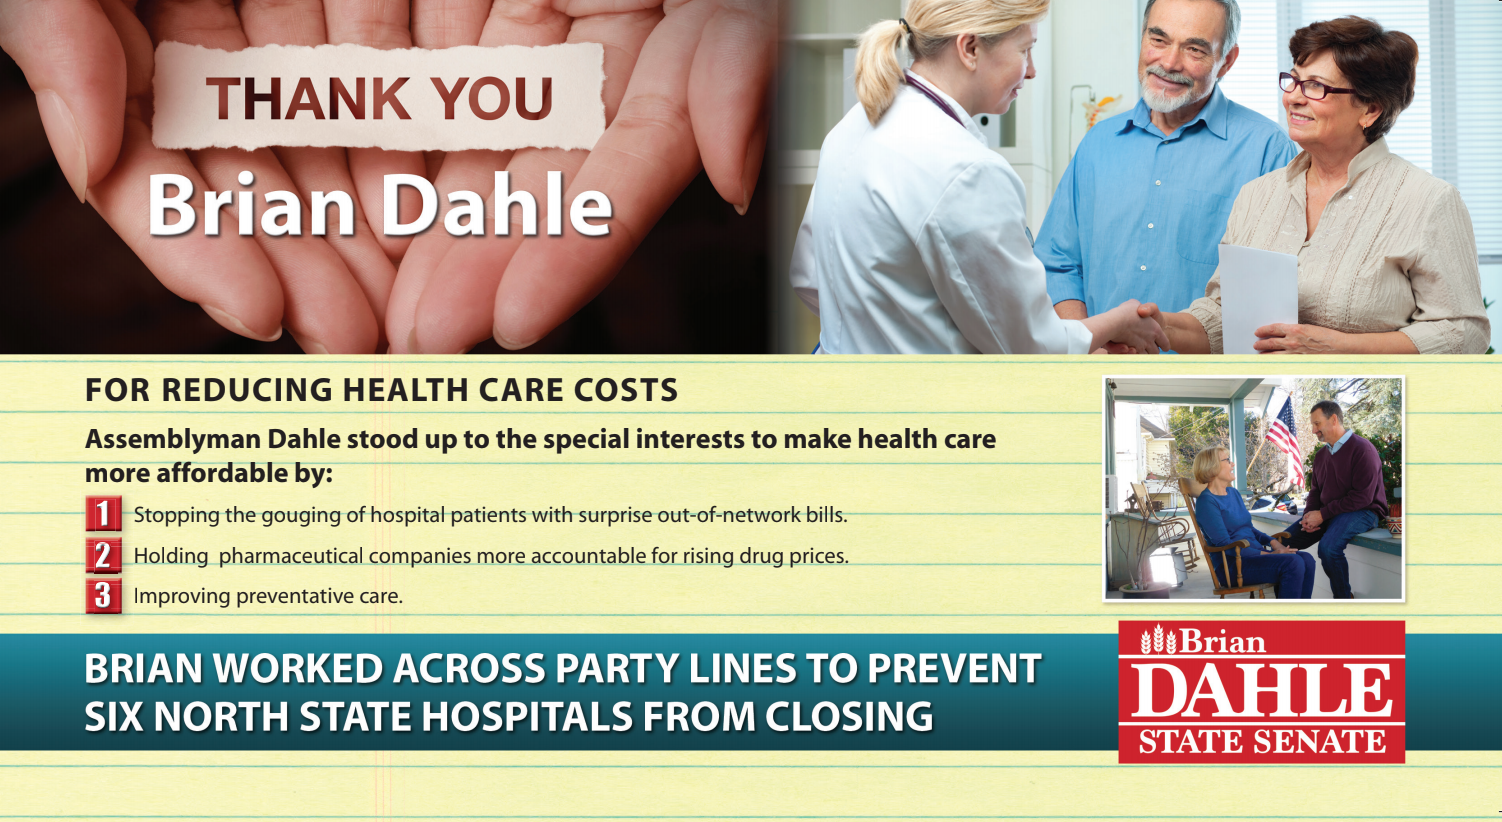 dahle_healthcare.png